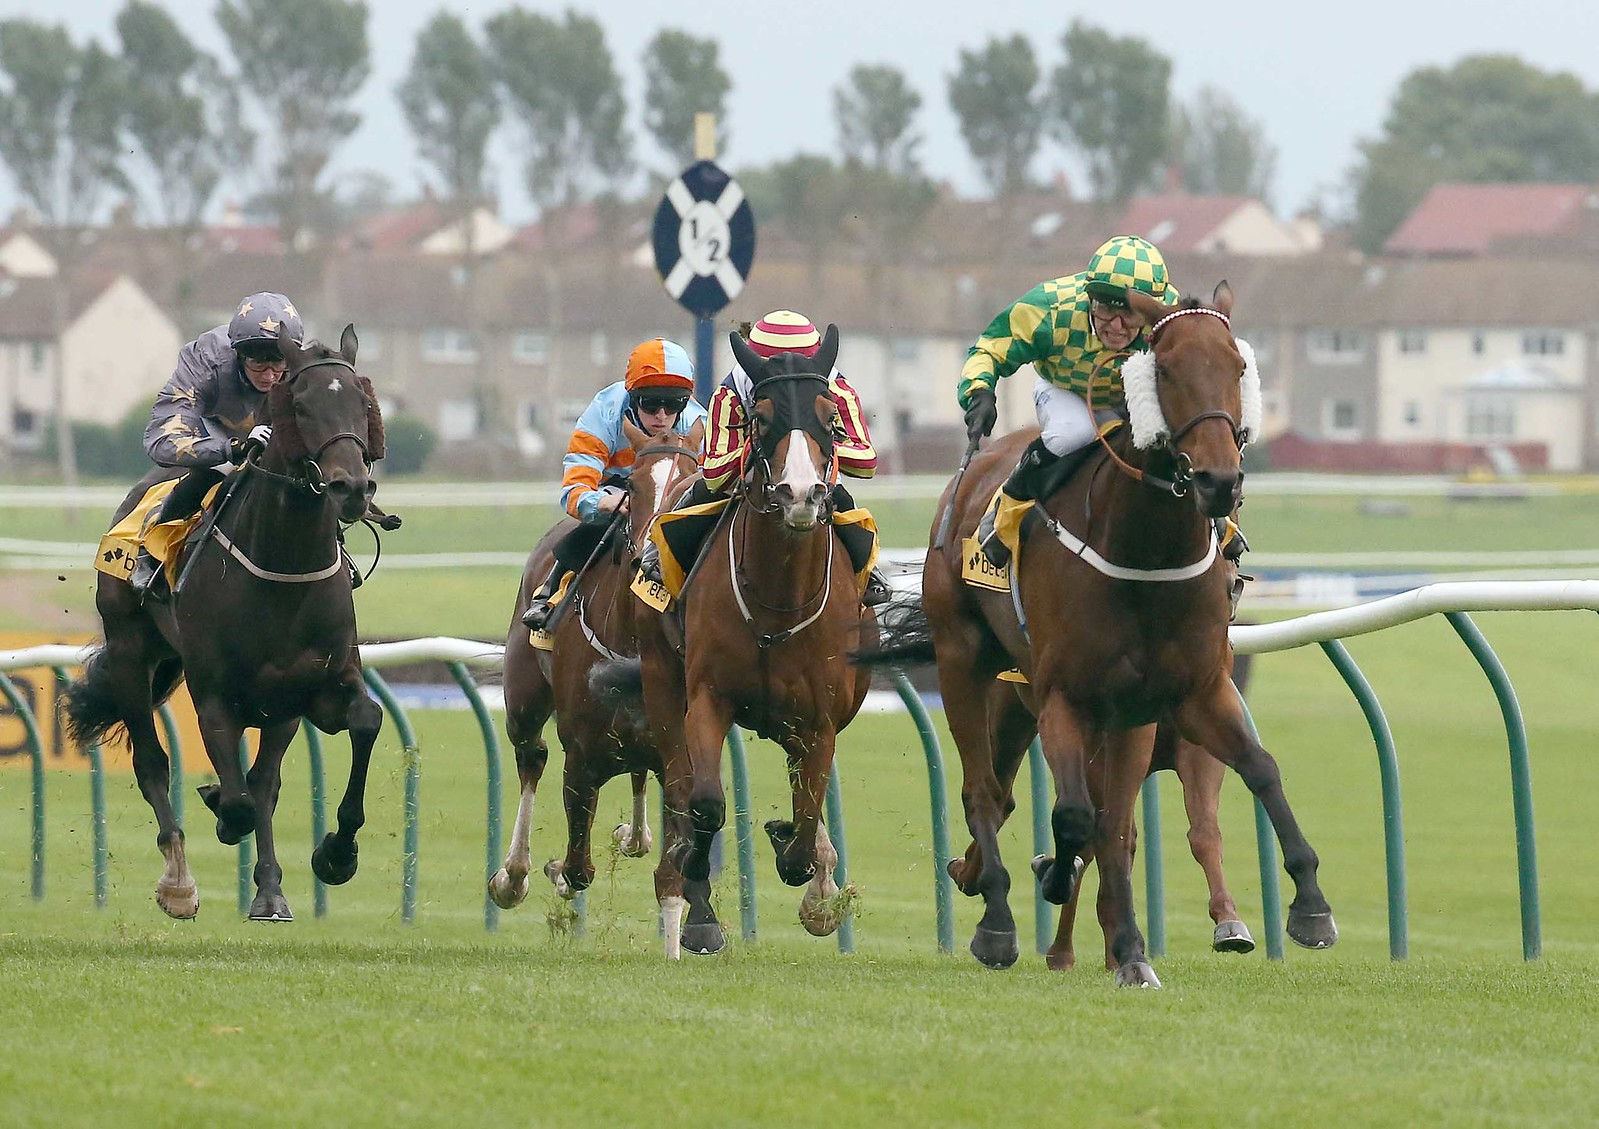 Camerooney wins Betfair prize at Ayr Racecourse